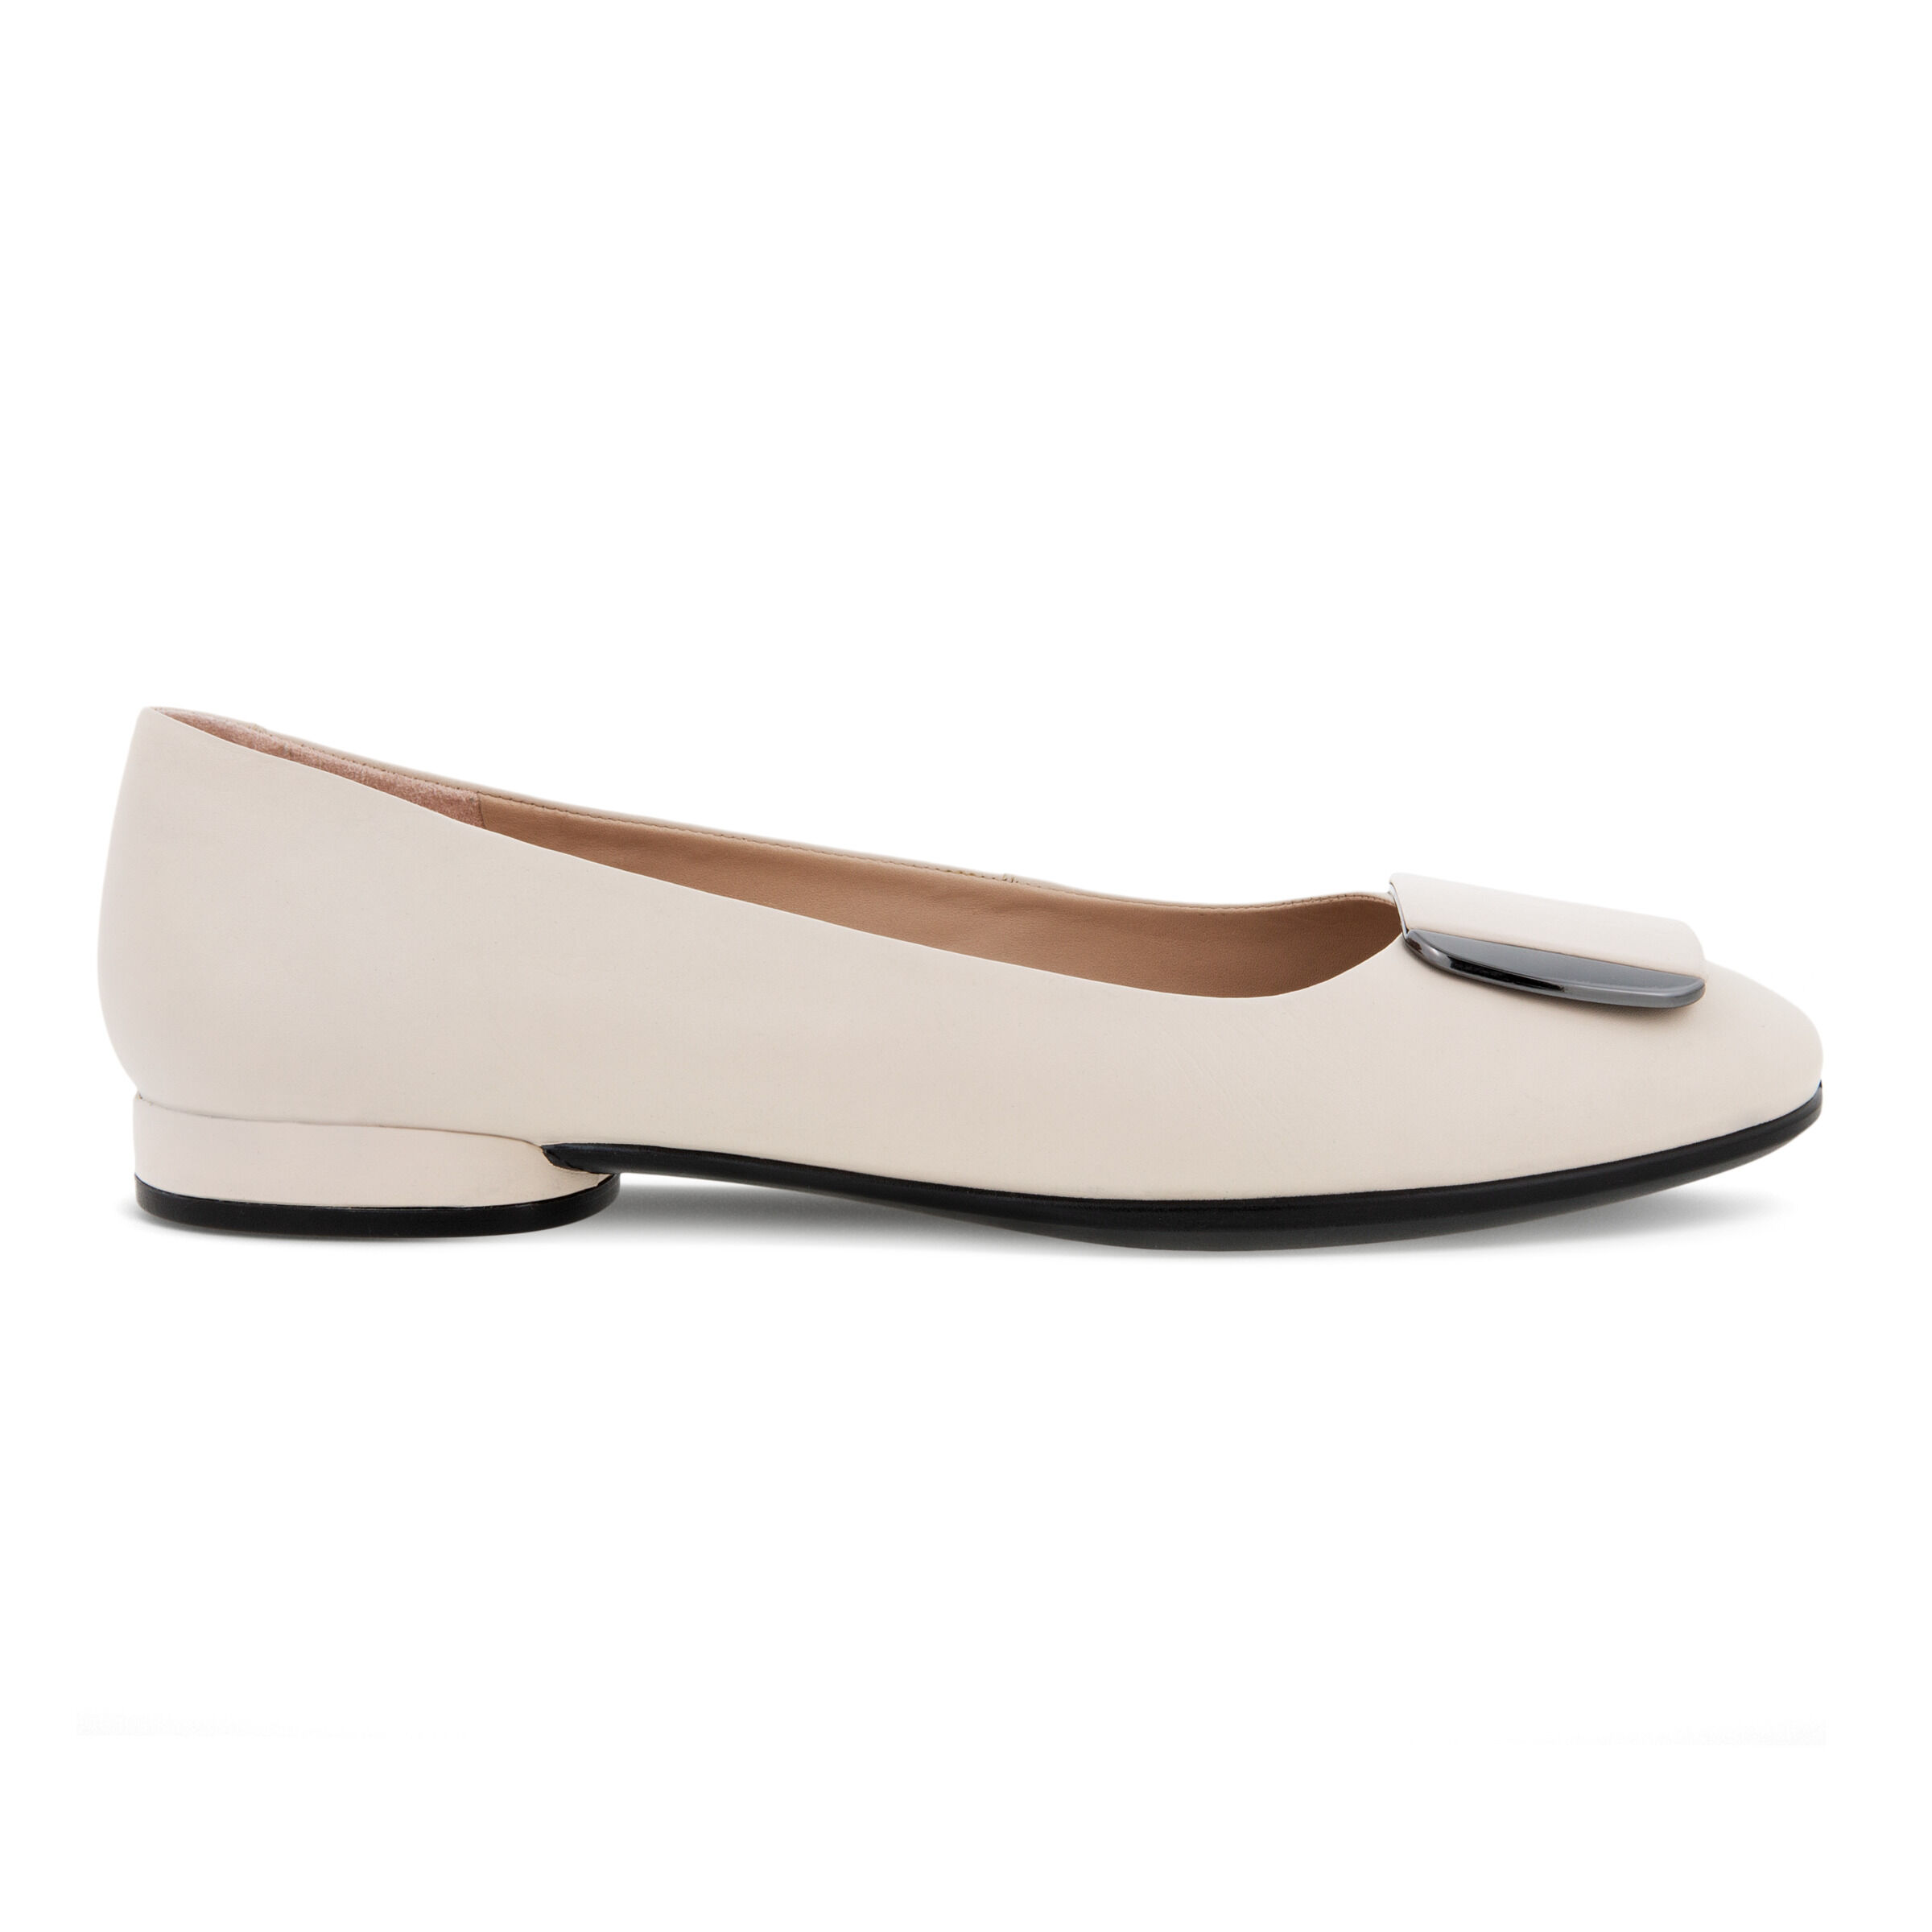 에코 ECCO Anine Womens Ballerina Shoes,LIMESTONE